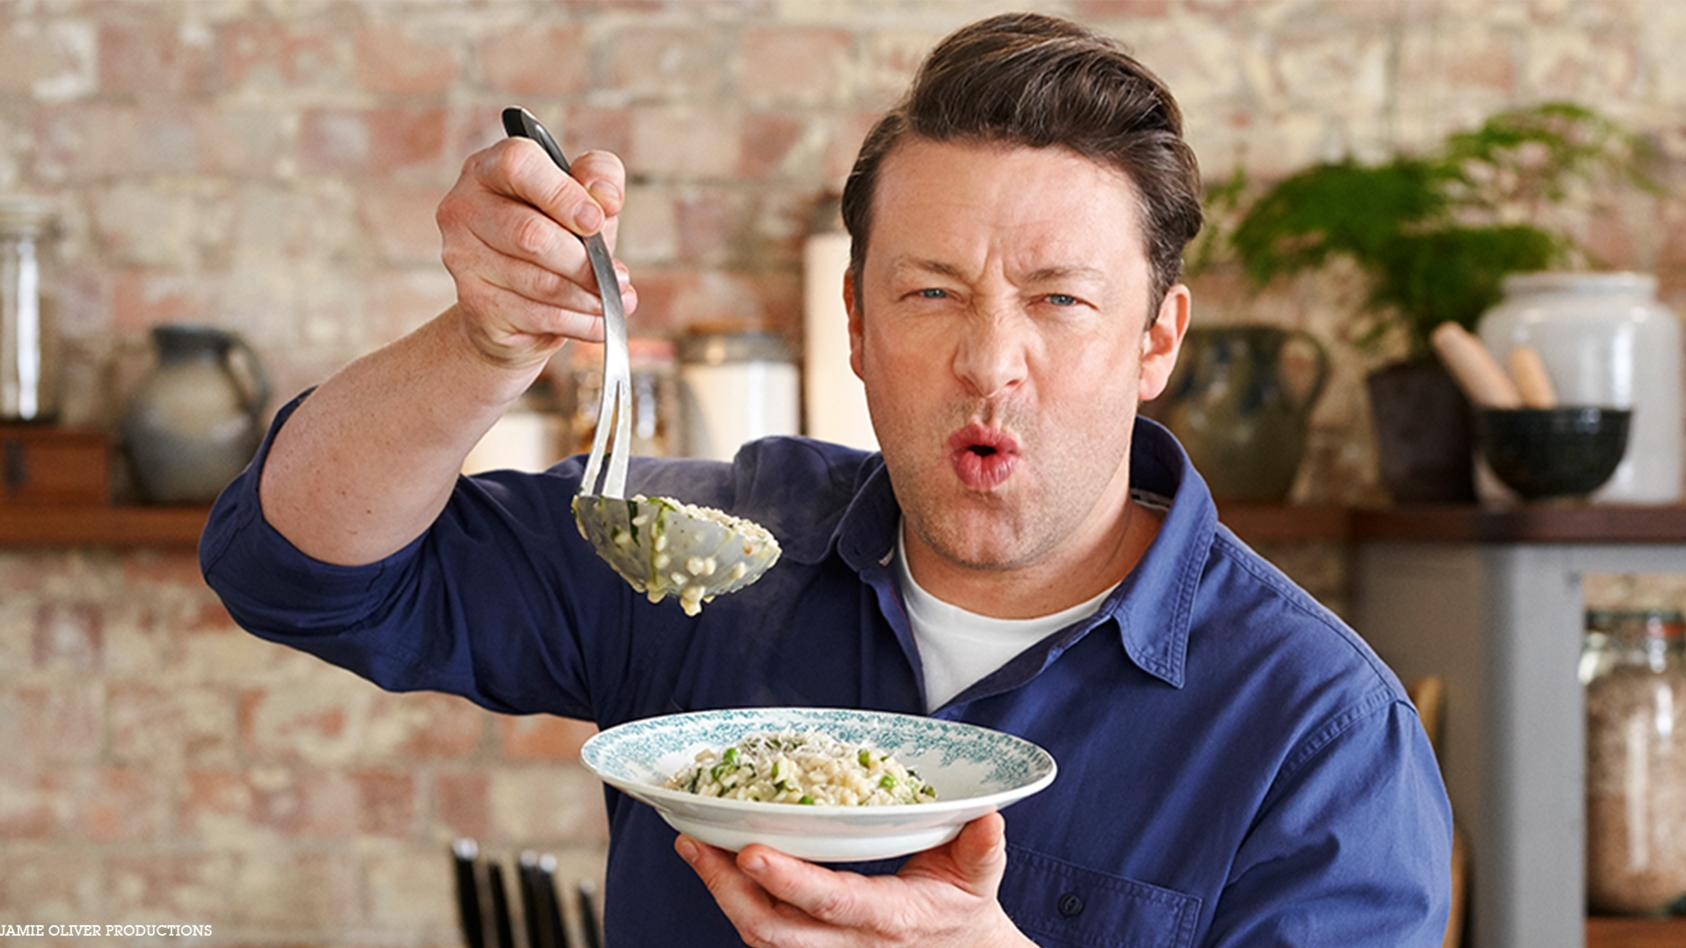 """Keep Cooking and Carry On"" - die neue Koch-Show von Jamie Oliver © Jamie Oliver Productions"